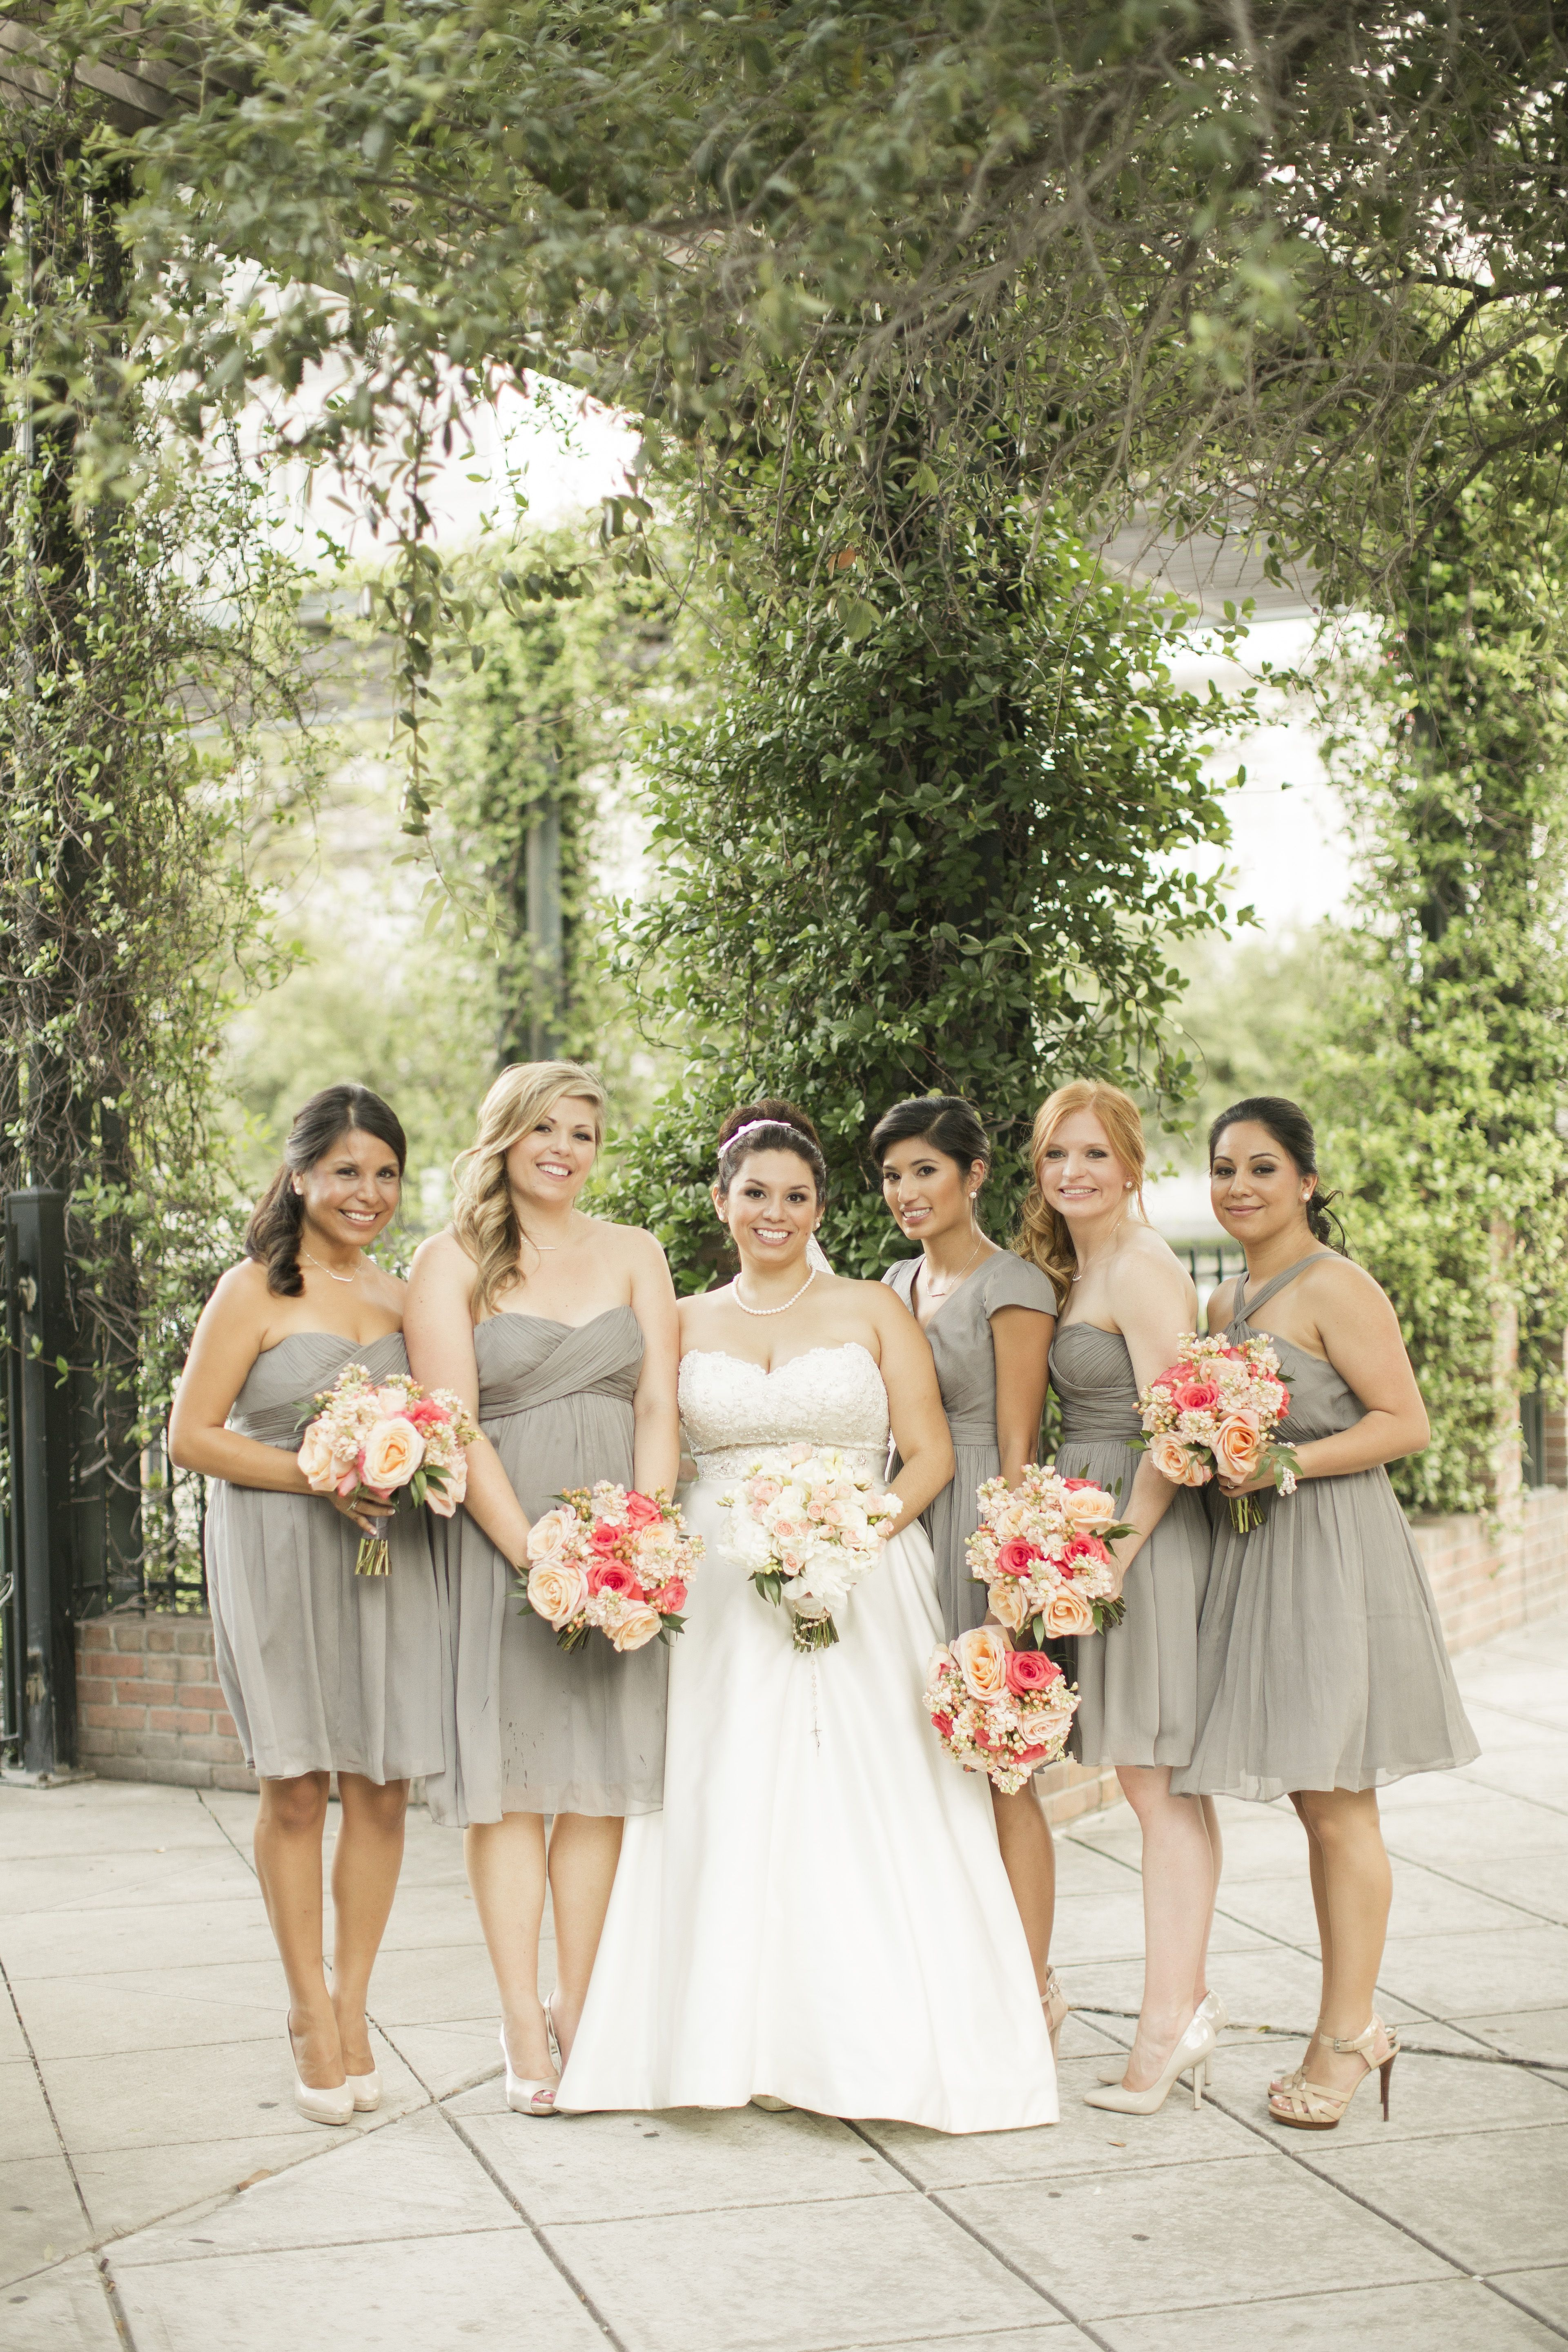 Jew bridesmaid dresses gray and peach wedding wedding bells crew bridesmaid dresses gray and peach wedding in love with the colors ombrellifo Images